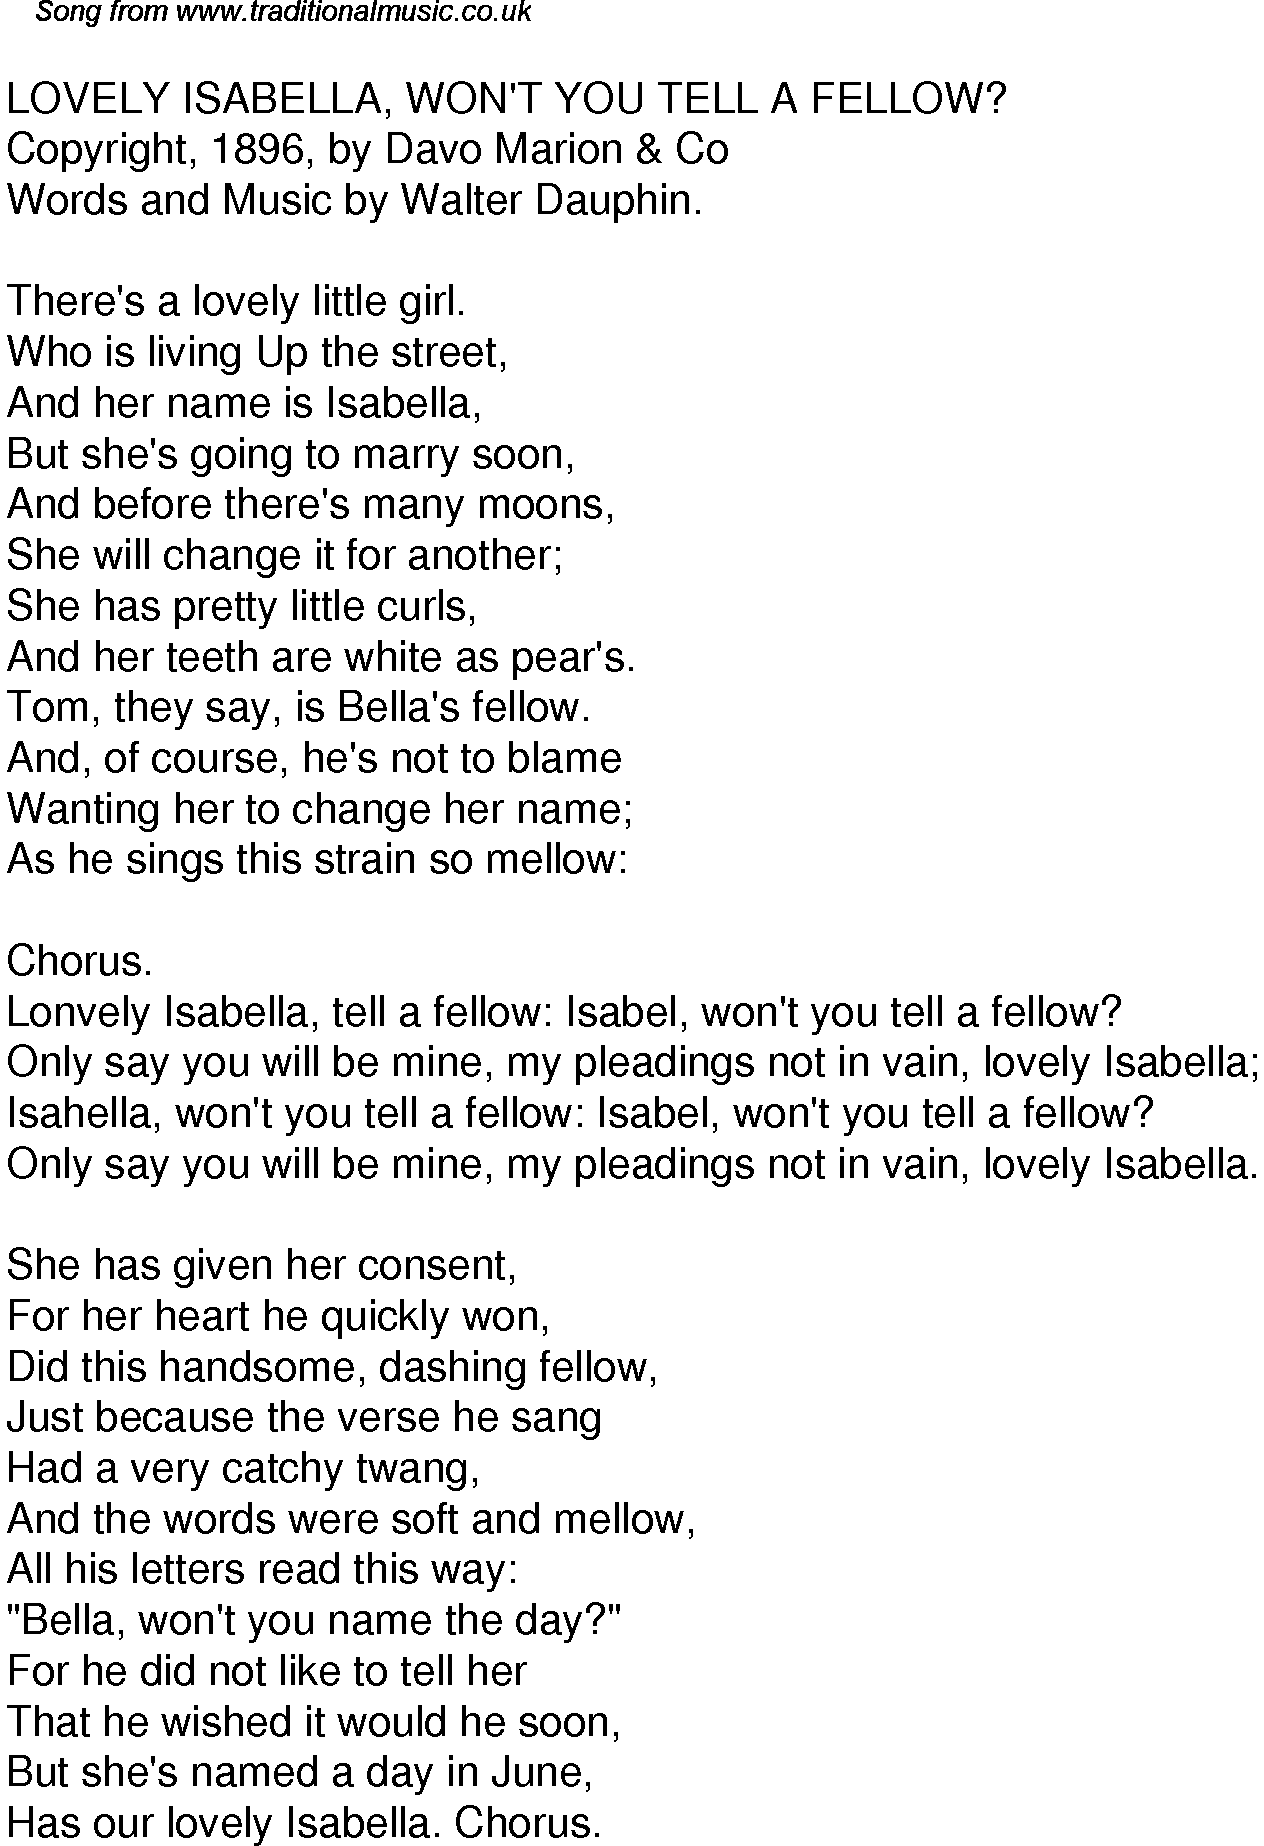 Old Time Song Lyrics For 52 Lovely Isabella Wont You Tell A Fellow